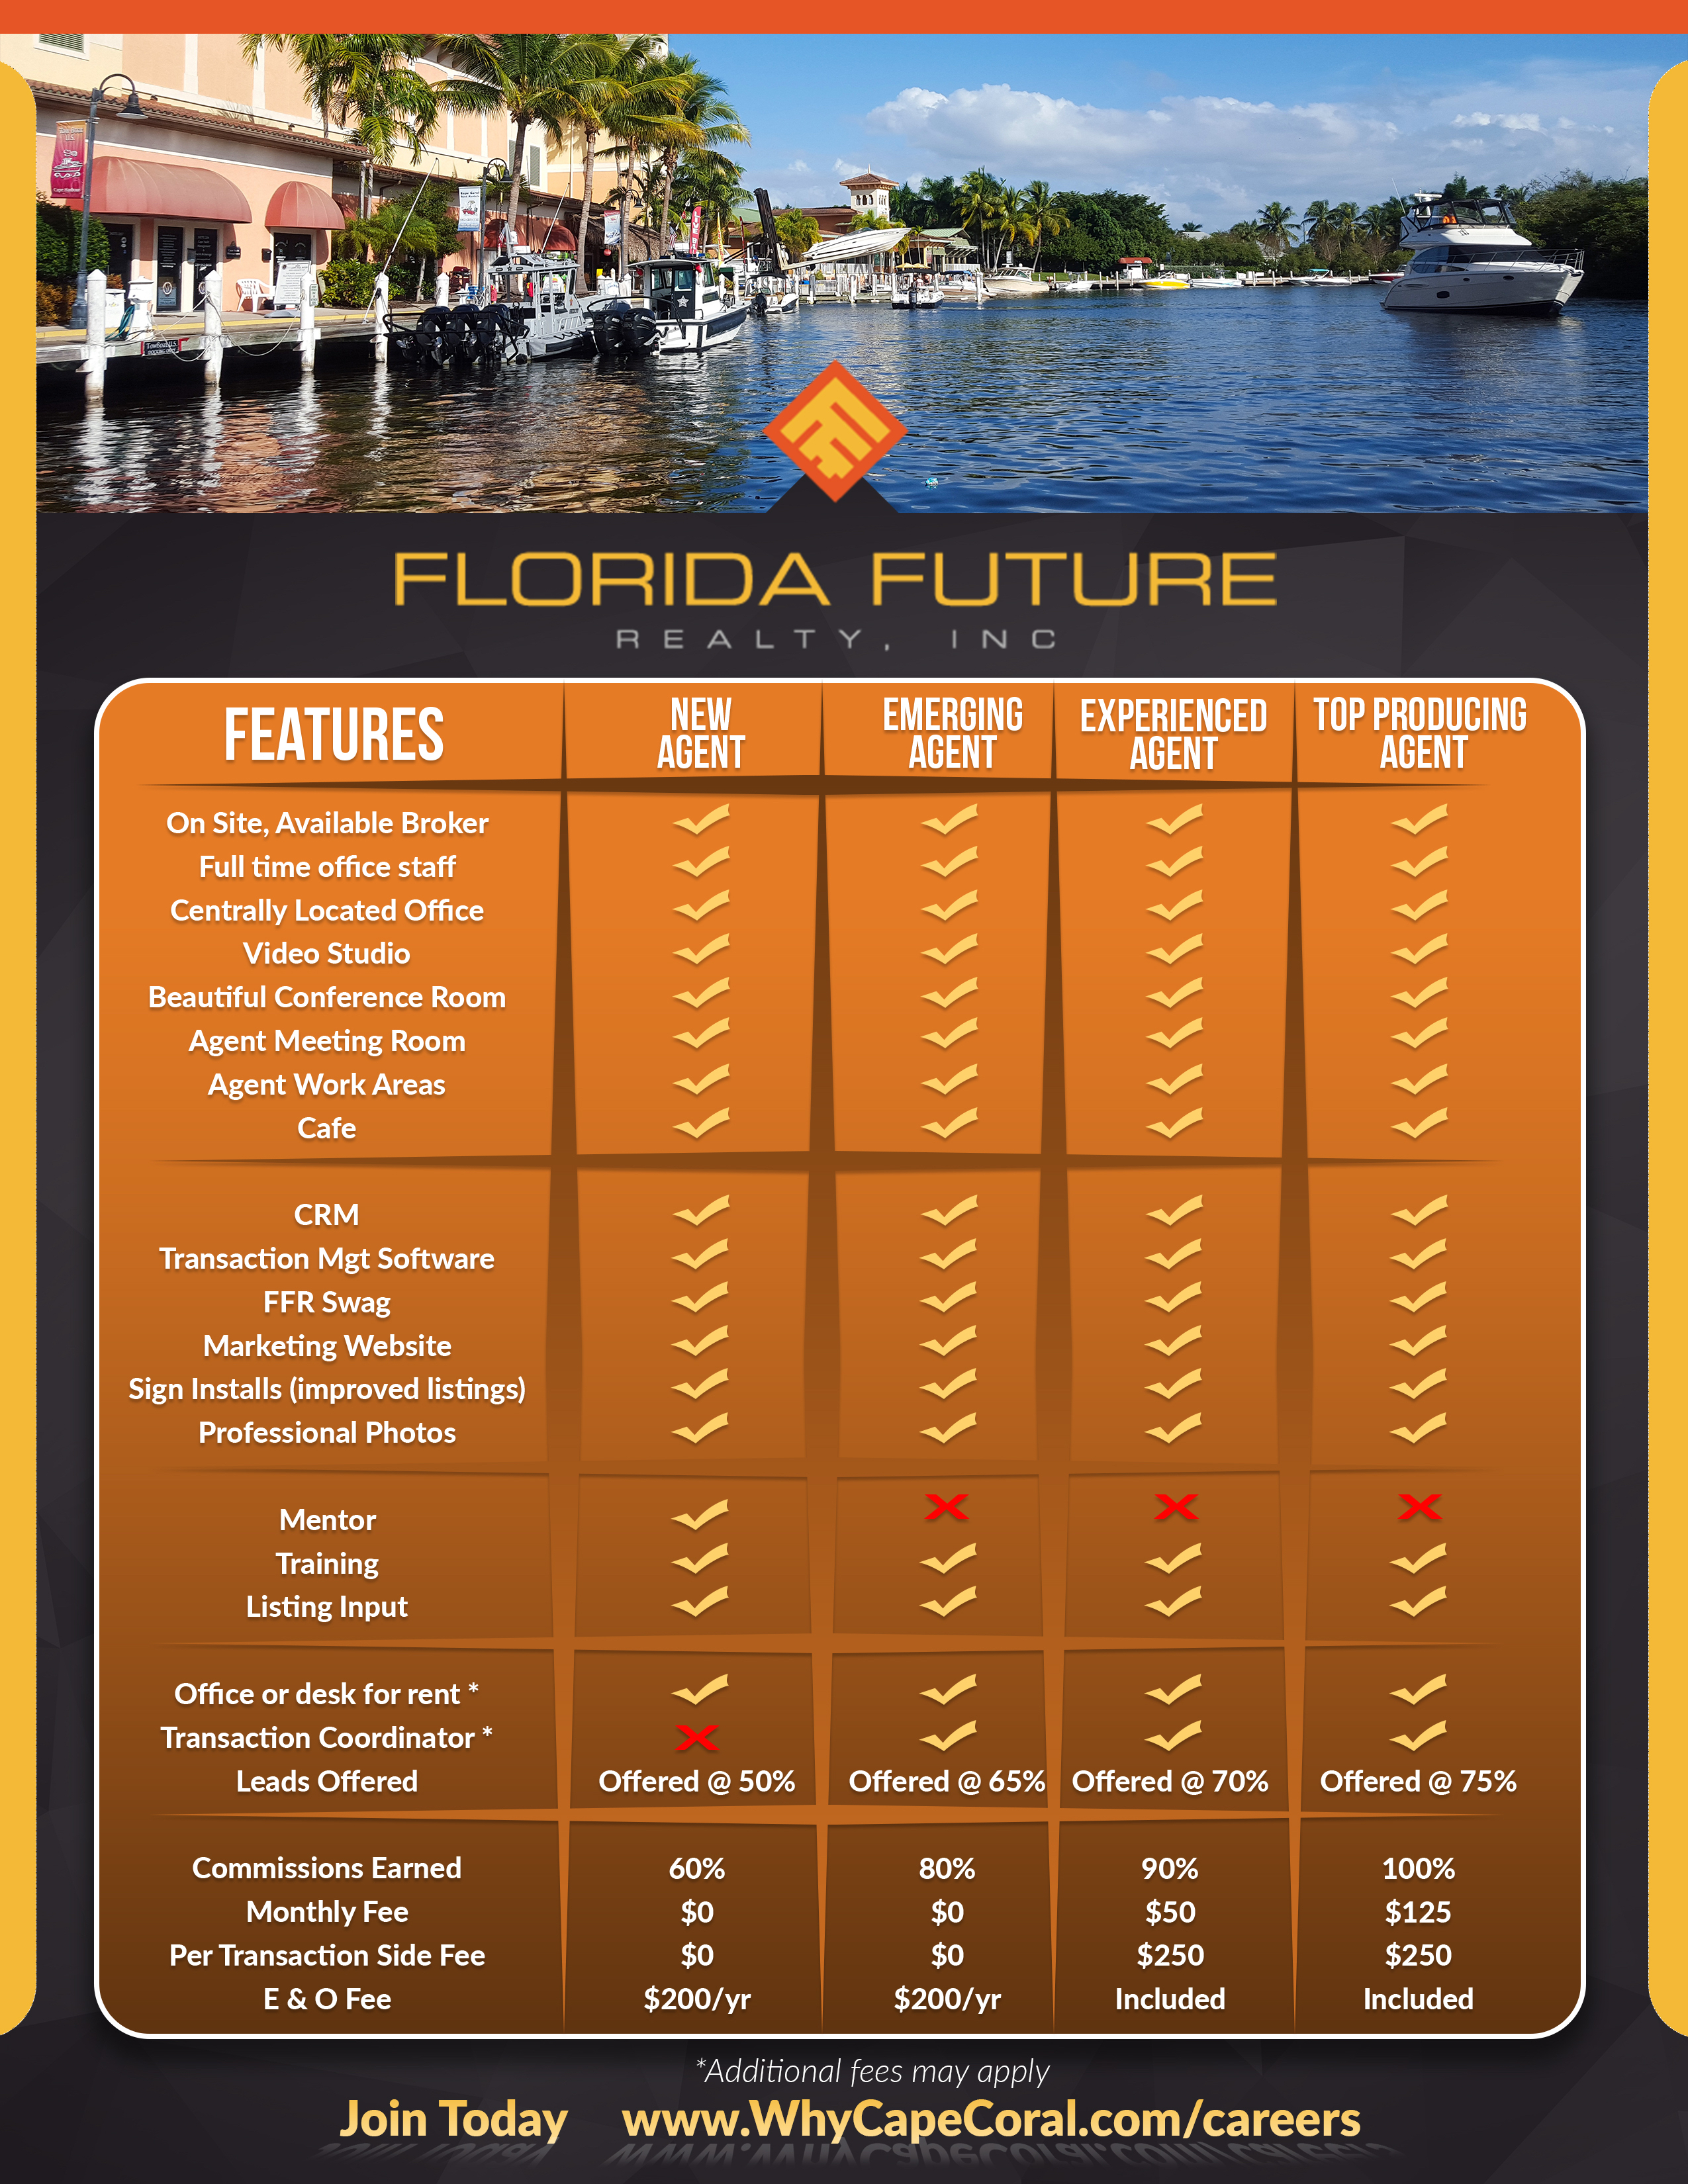 Florida Future Realty is hiring